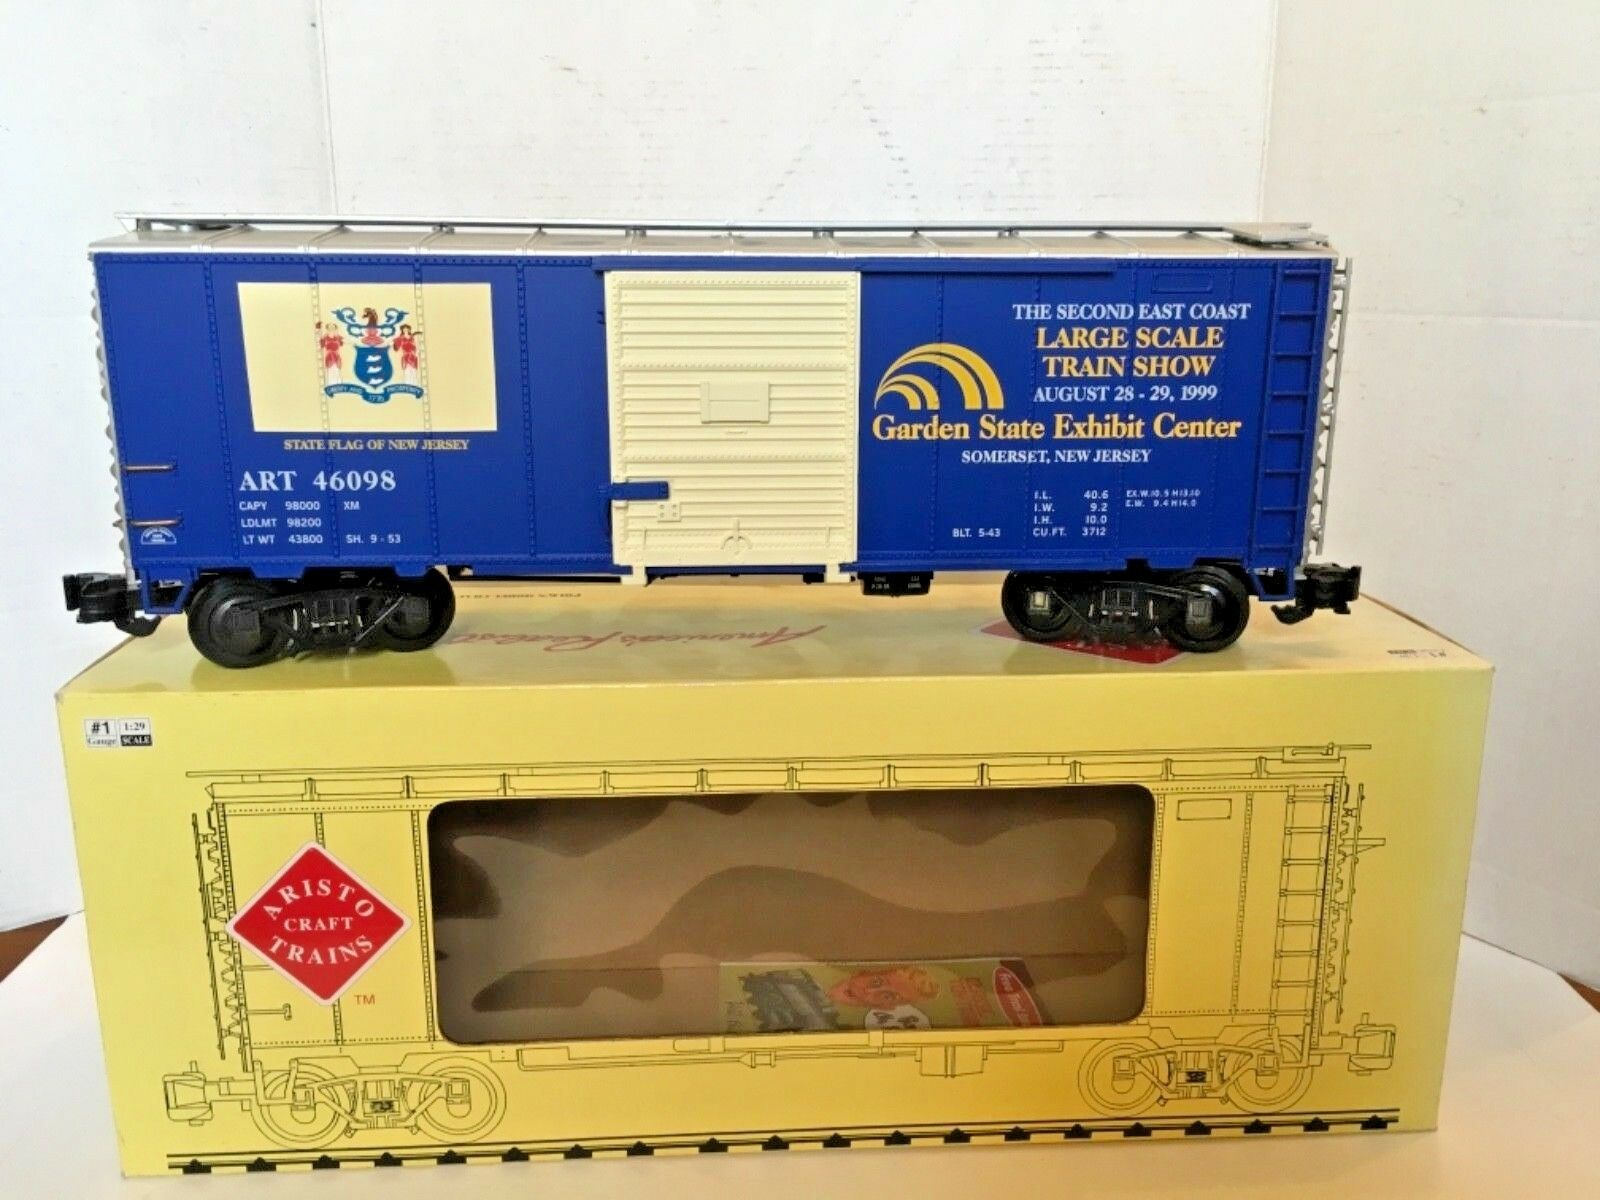 Aristocraft Steel Box Car No. ART-46098 1999 East Coast Coast Coast Large Scale Show 5956f1